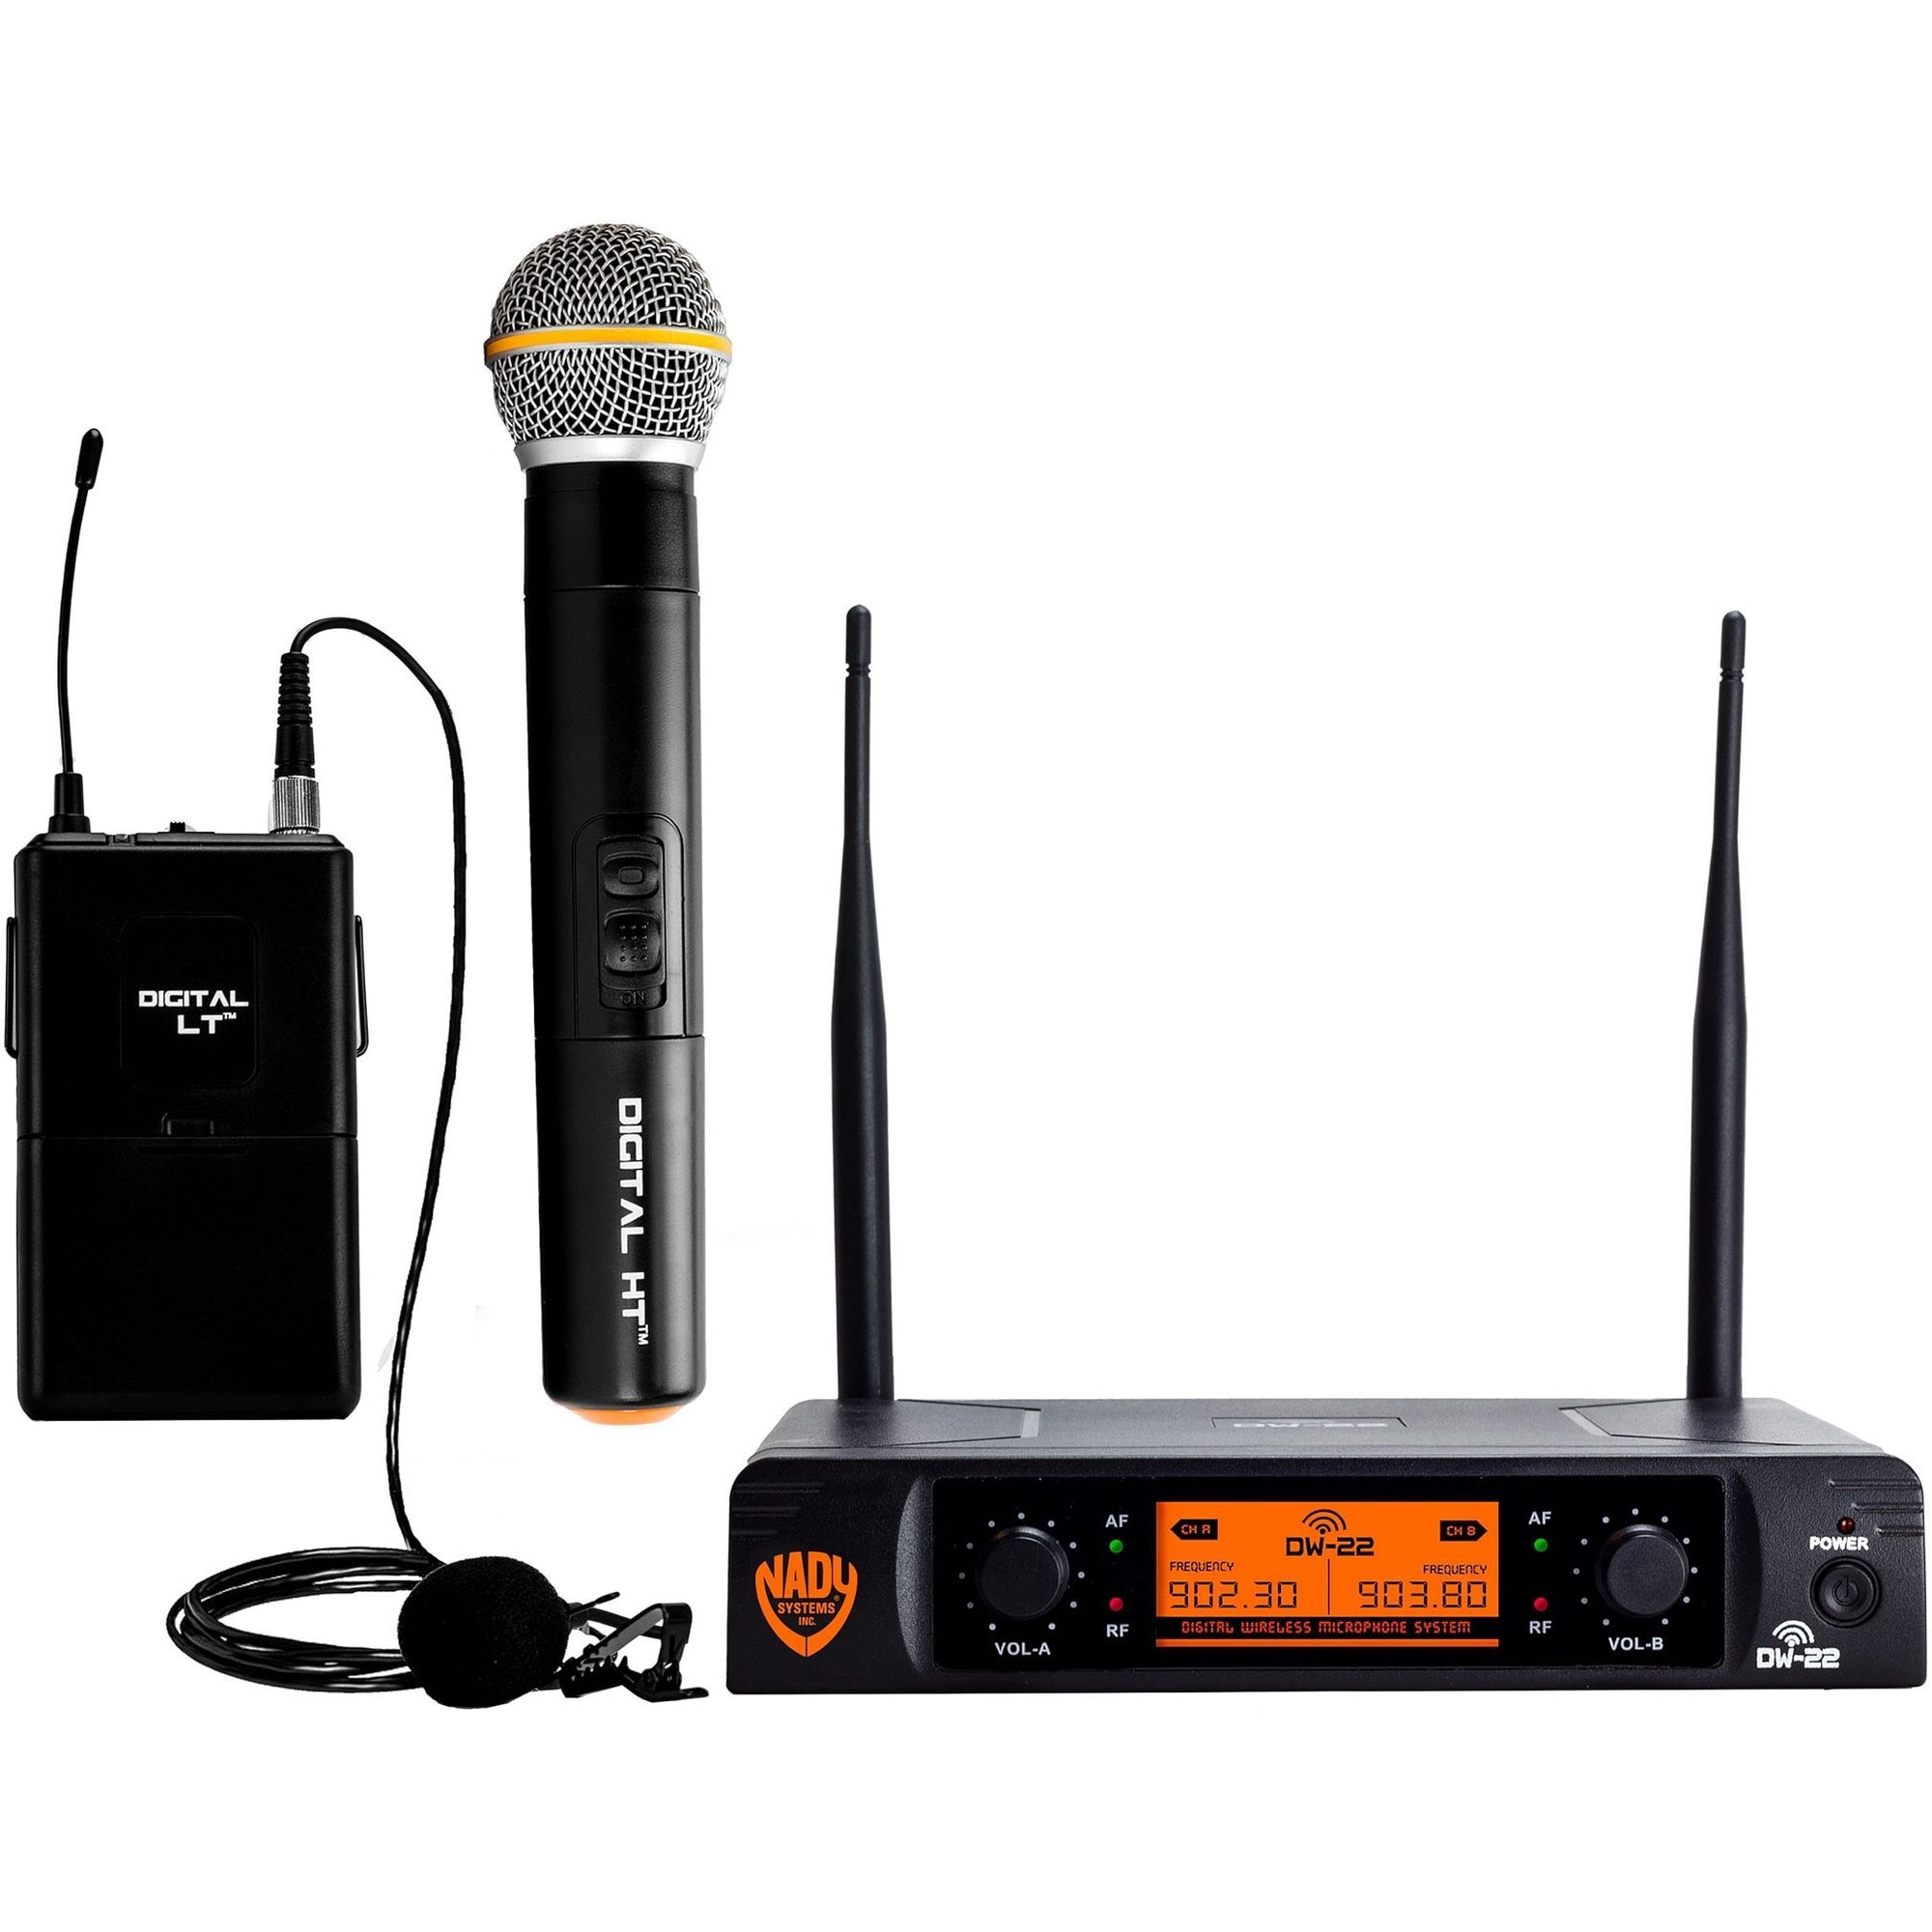 Nady DW-22 Dual Transmitter Digital Wireless Handheld and Lavalier Microphone Combination System, Channel D-15 and D-16